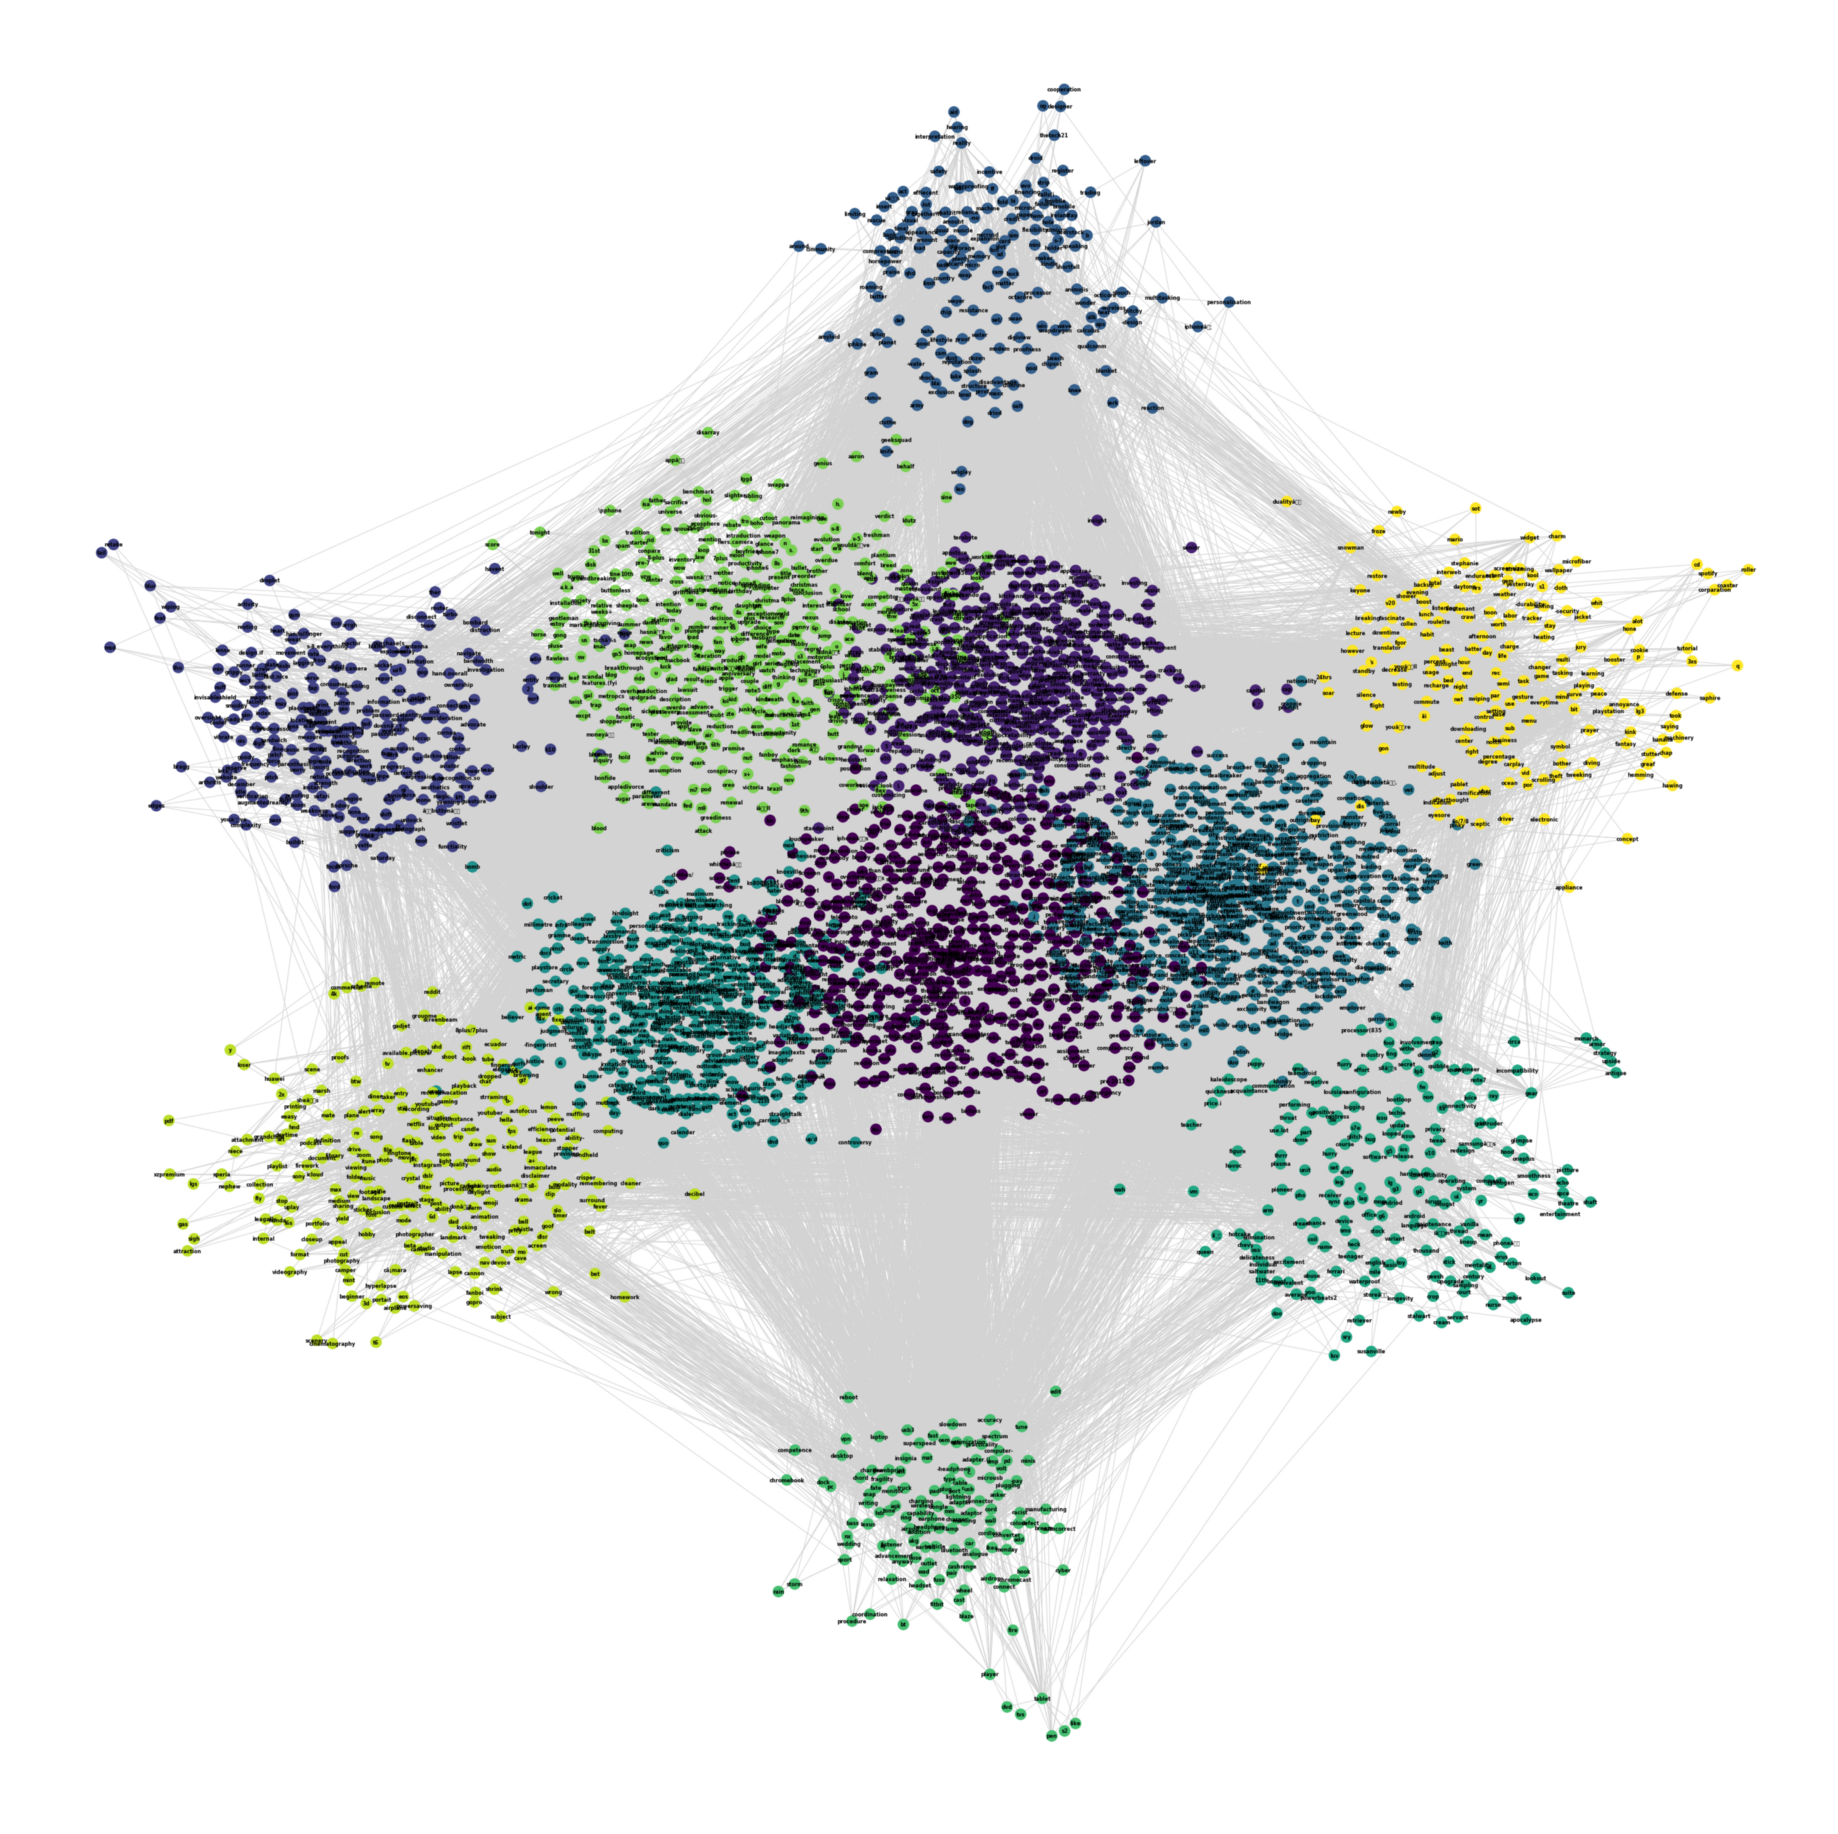 Getting started with graph analysis in Python with pandas and networkx